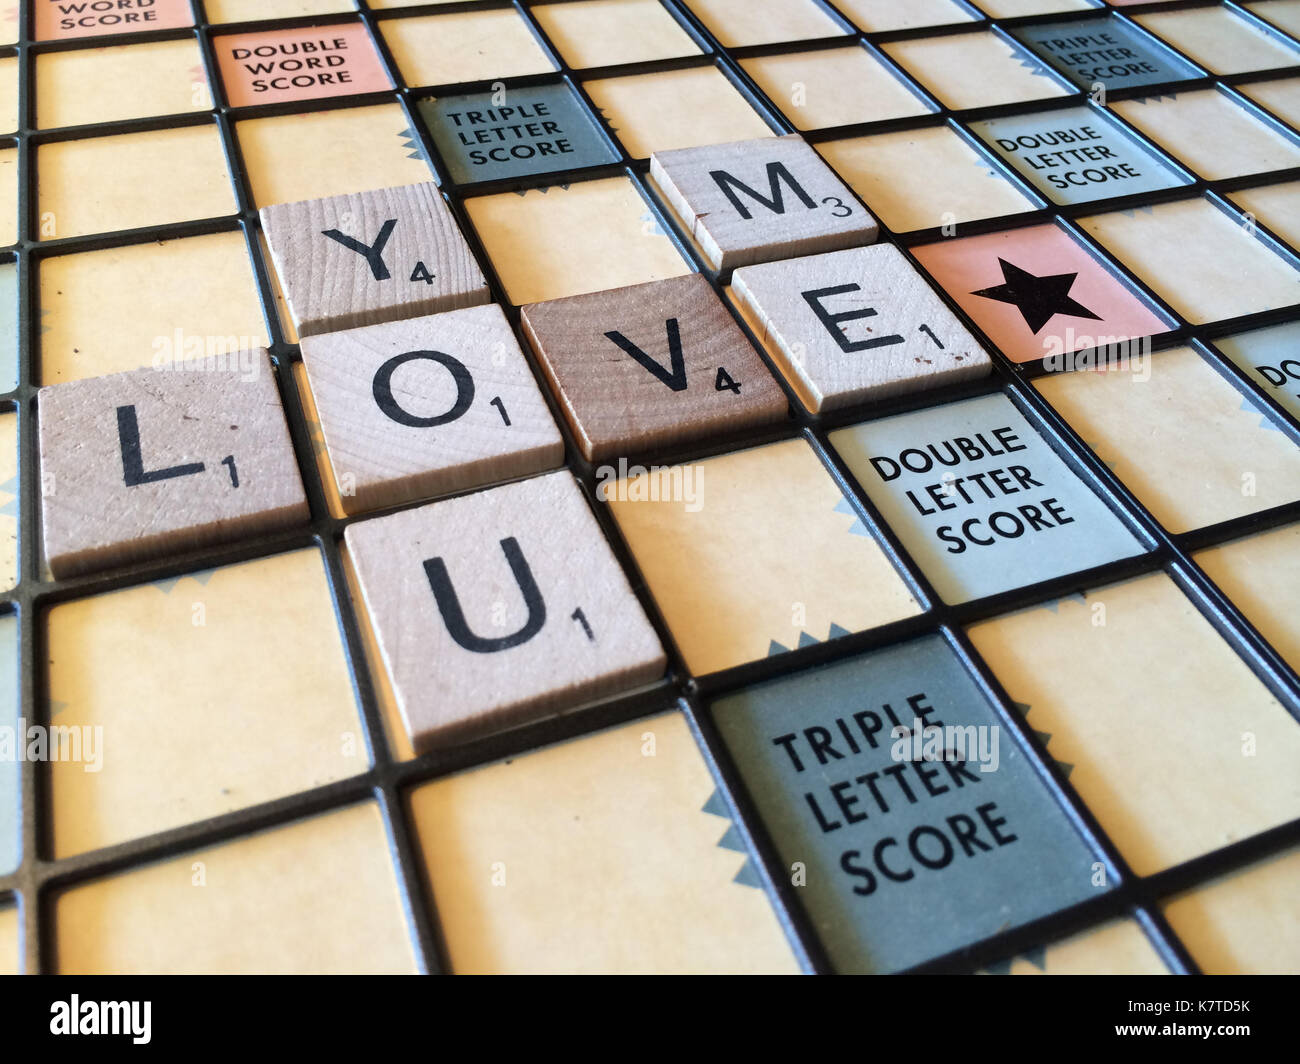 The words 'you love me' spelled out on a Scrabble game board. - Stock Image